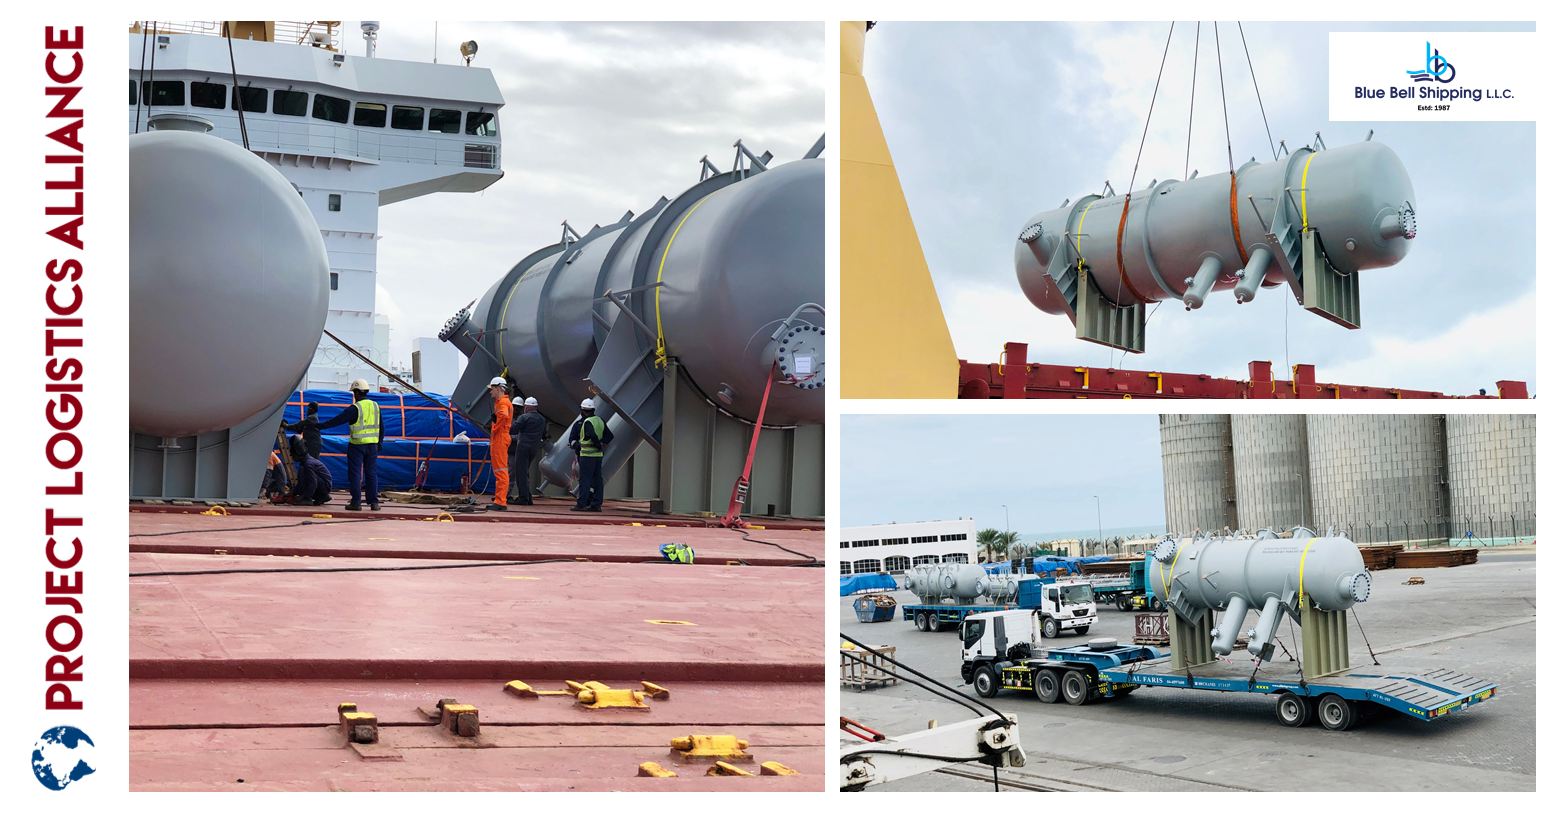 Throwback: Blue Bell Shipping Finishes Loading And Lashing Of 6 Pressure Vessels